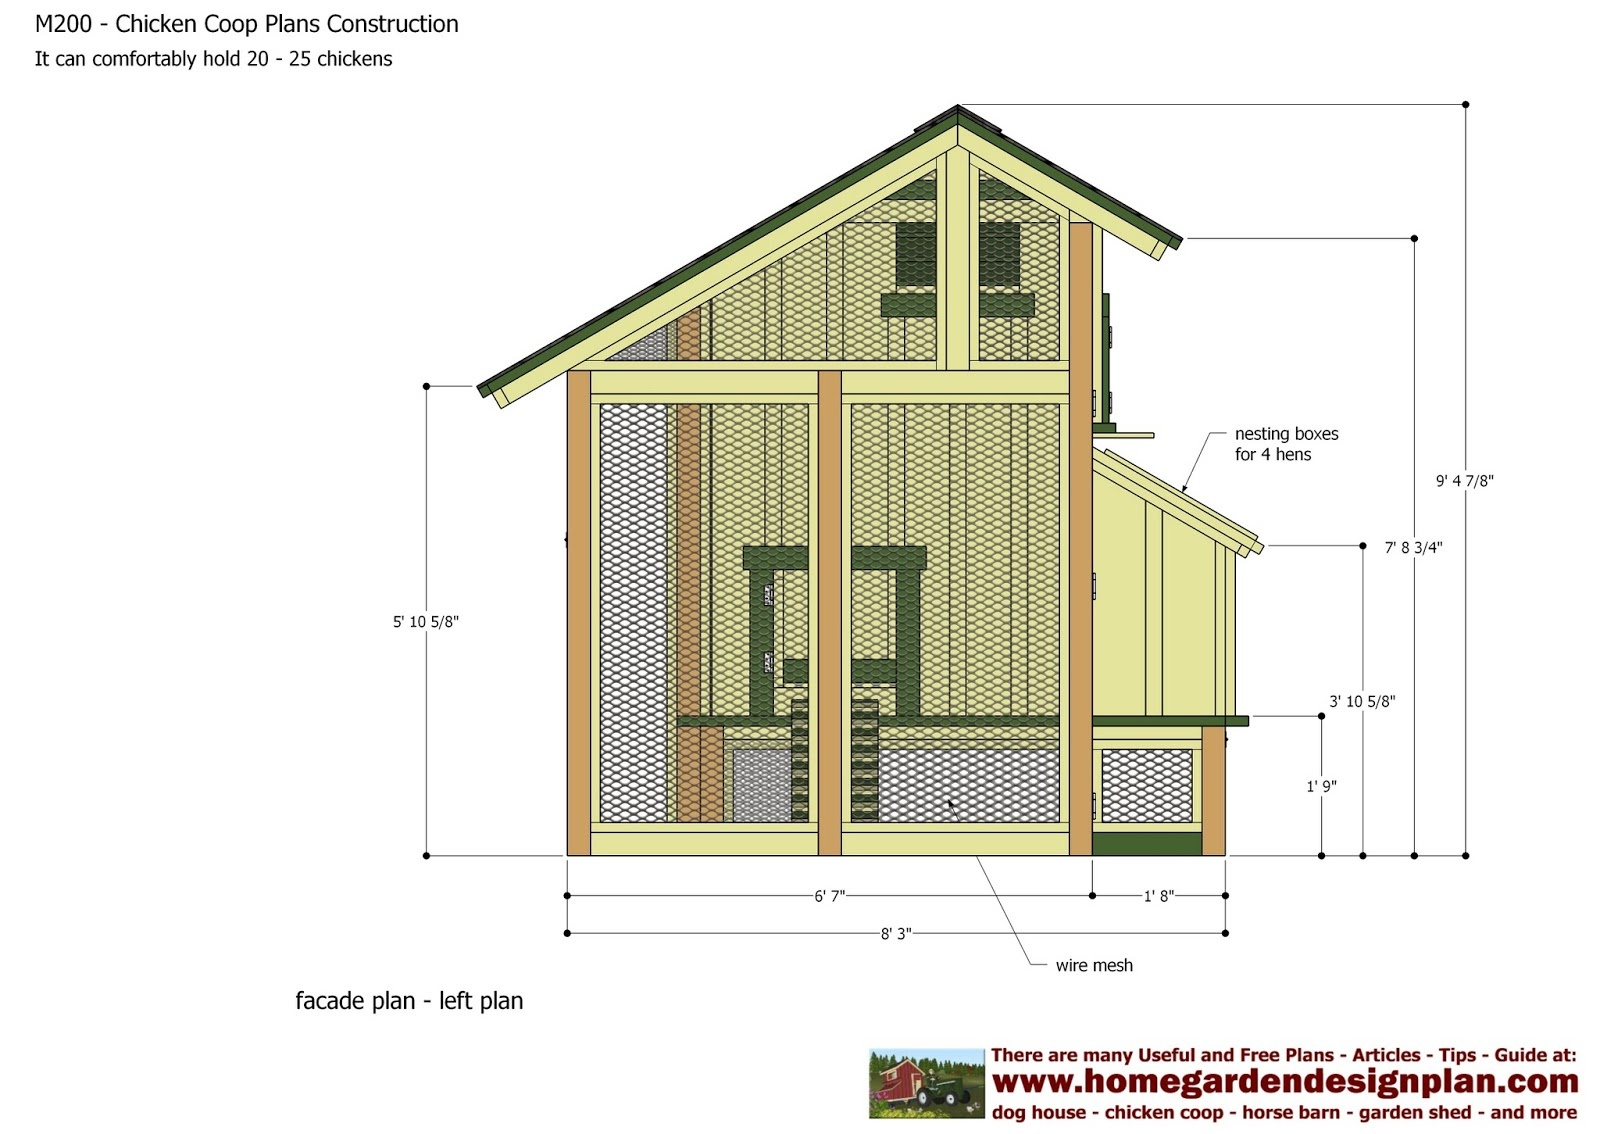 Gellencoop: Free Printable Plans For A Chicken Coop - Free Printable Chicken Coop Plans